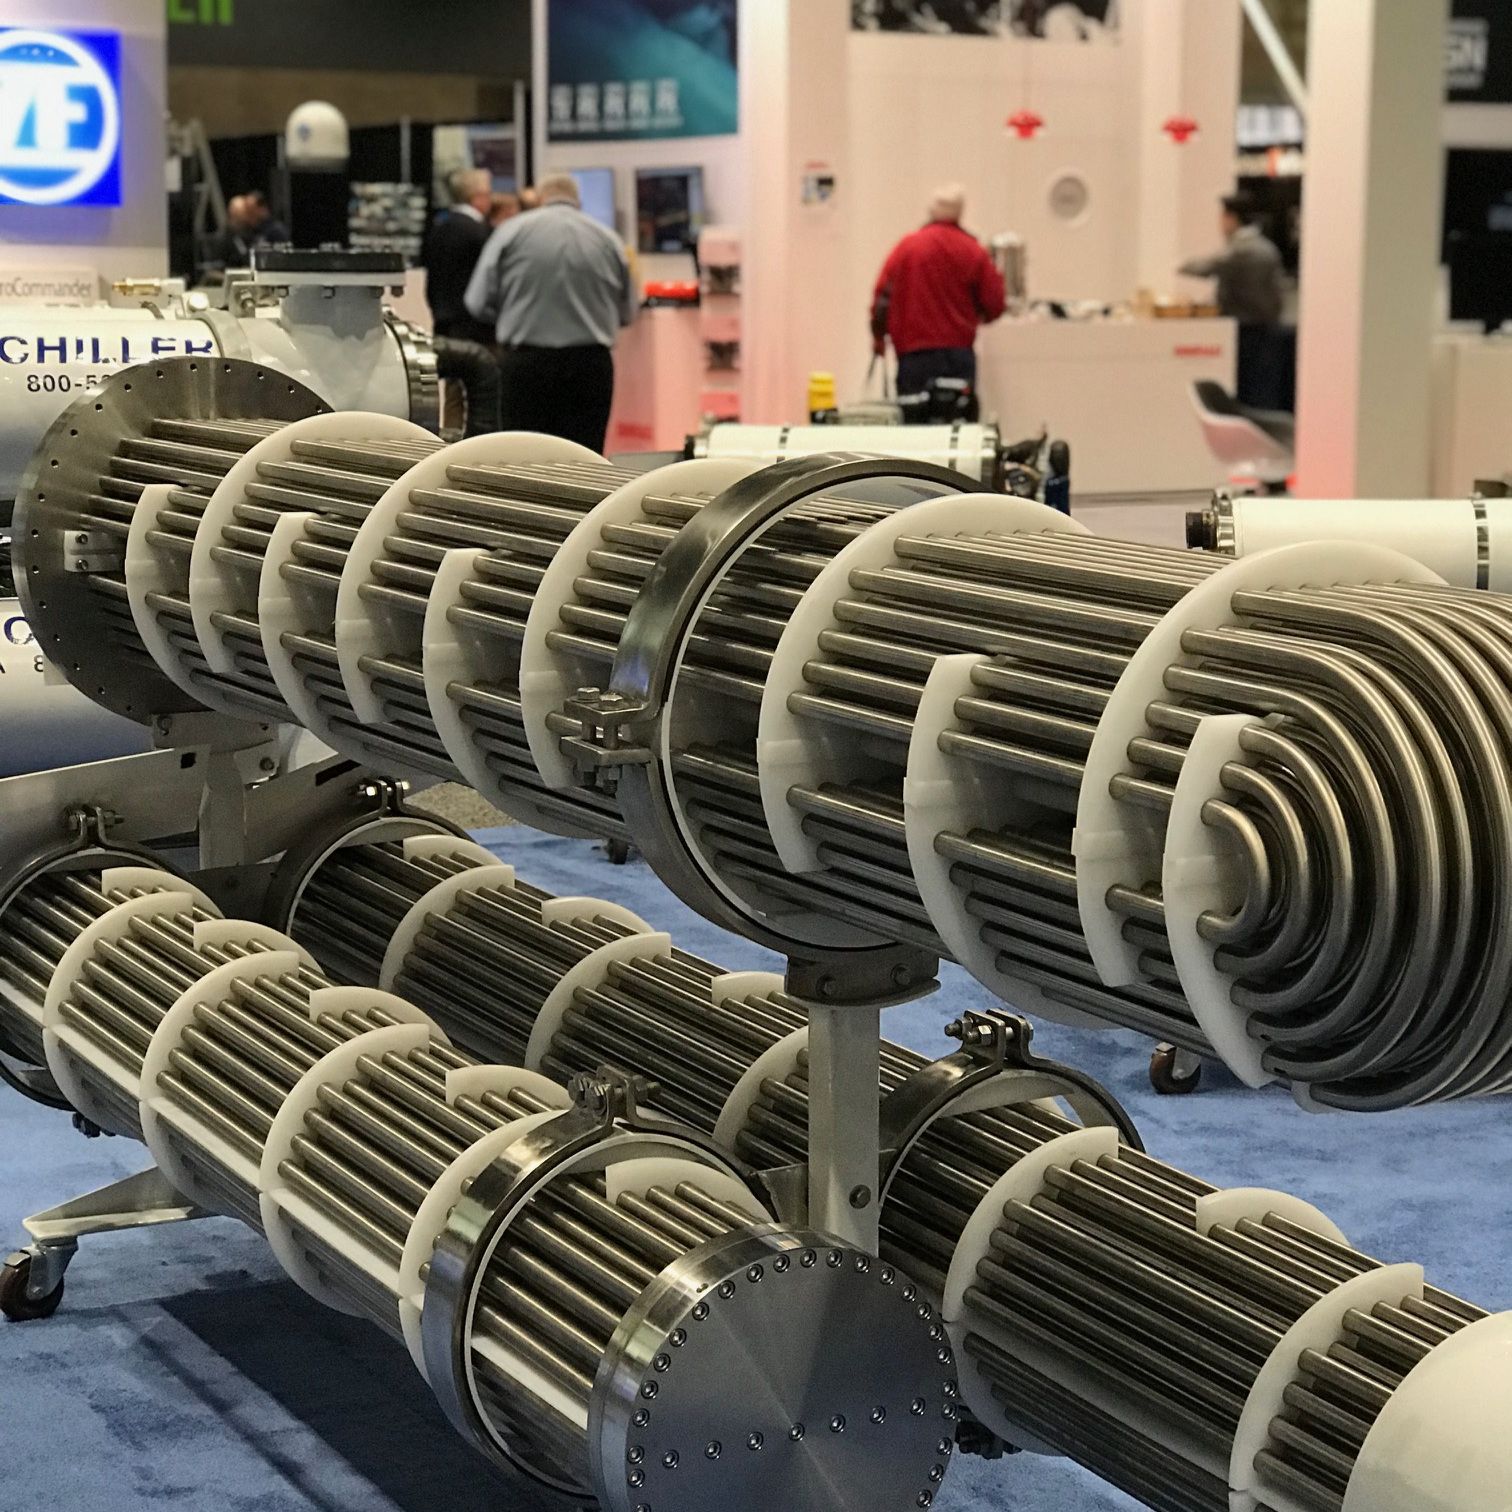 Chillers on display at Pacific Marine Expo in Seattle, Washington.